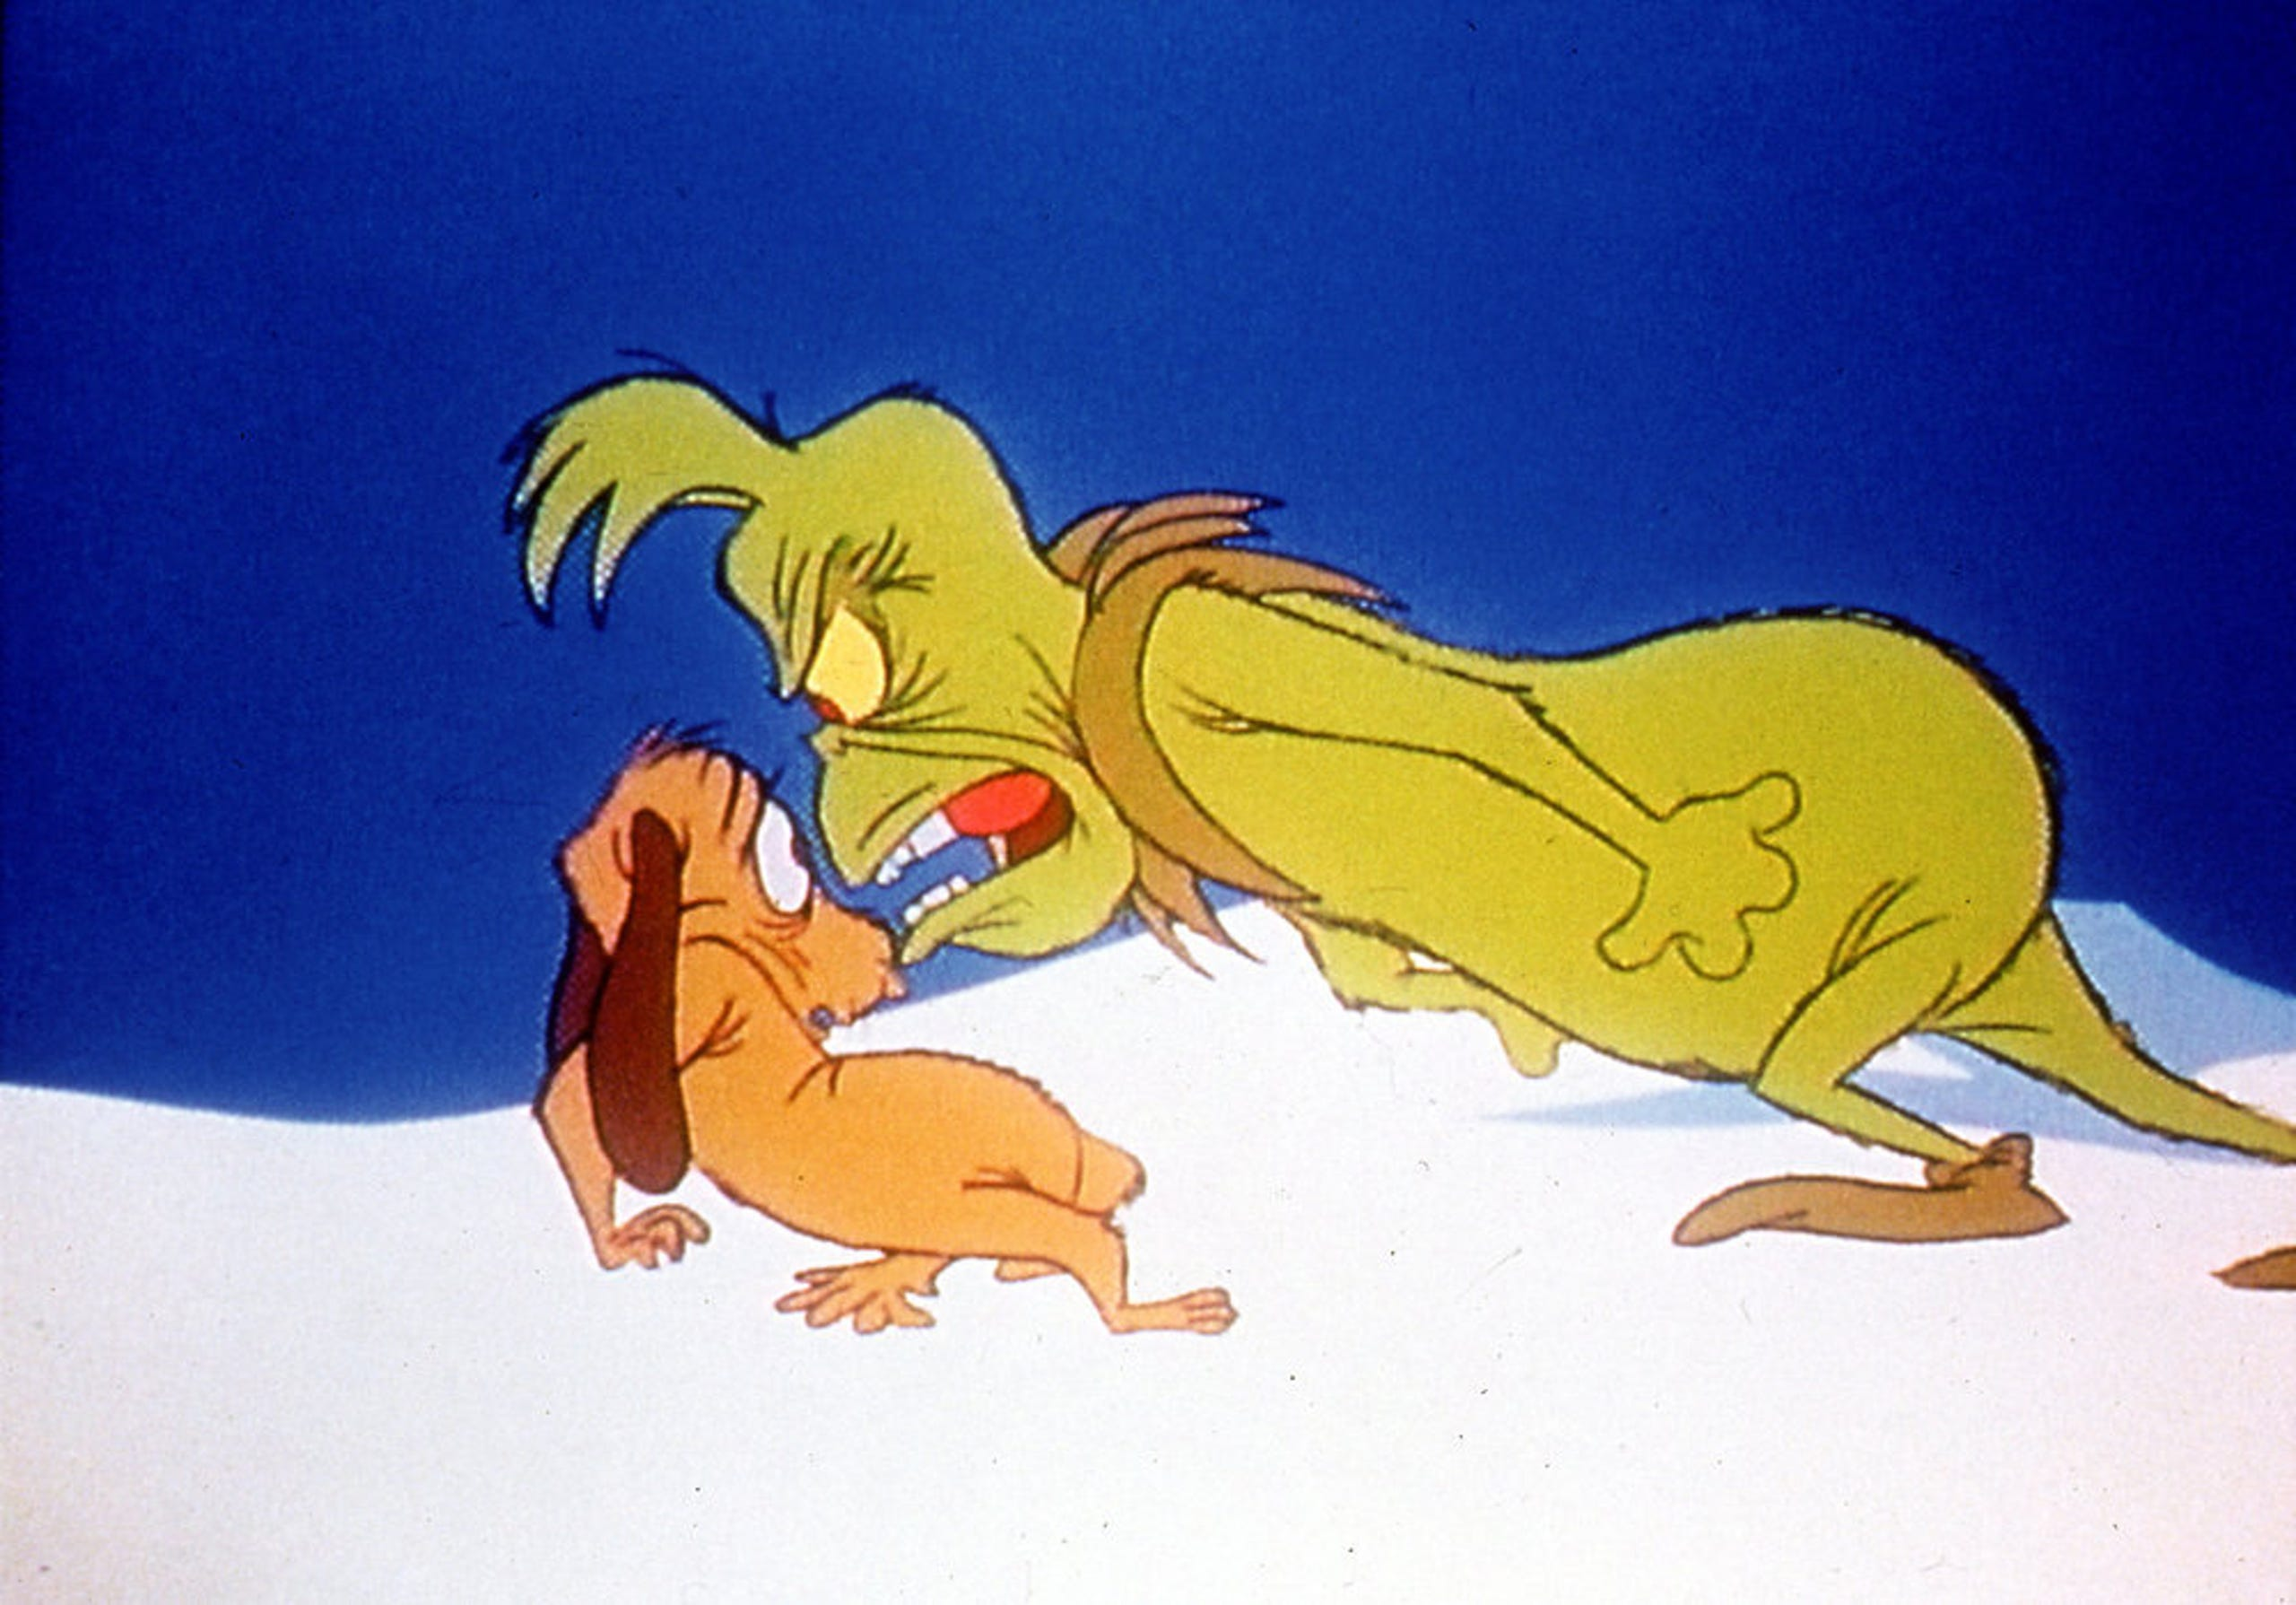 How The Grinch Stole Christmas 1966 Max.The Grinch Dog Star Max Ode To The Green Grinch S Faithful